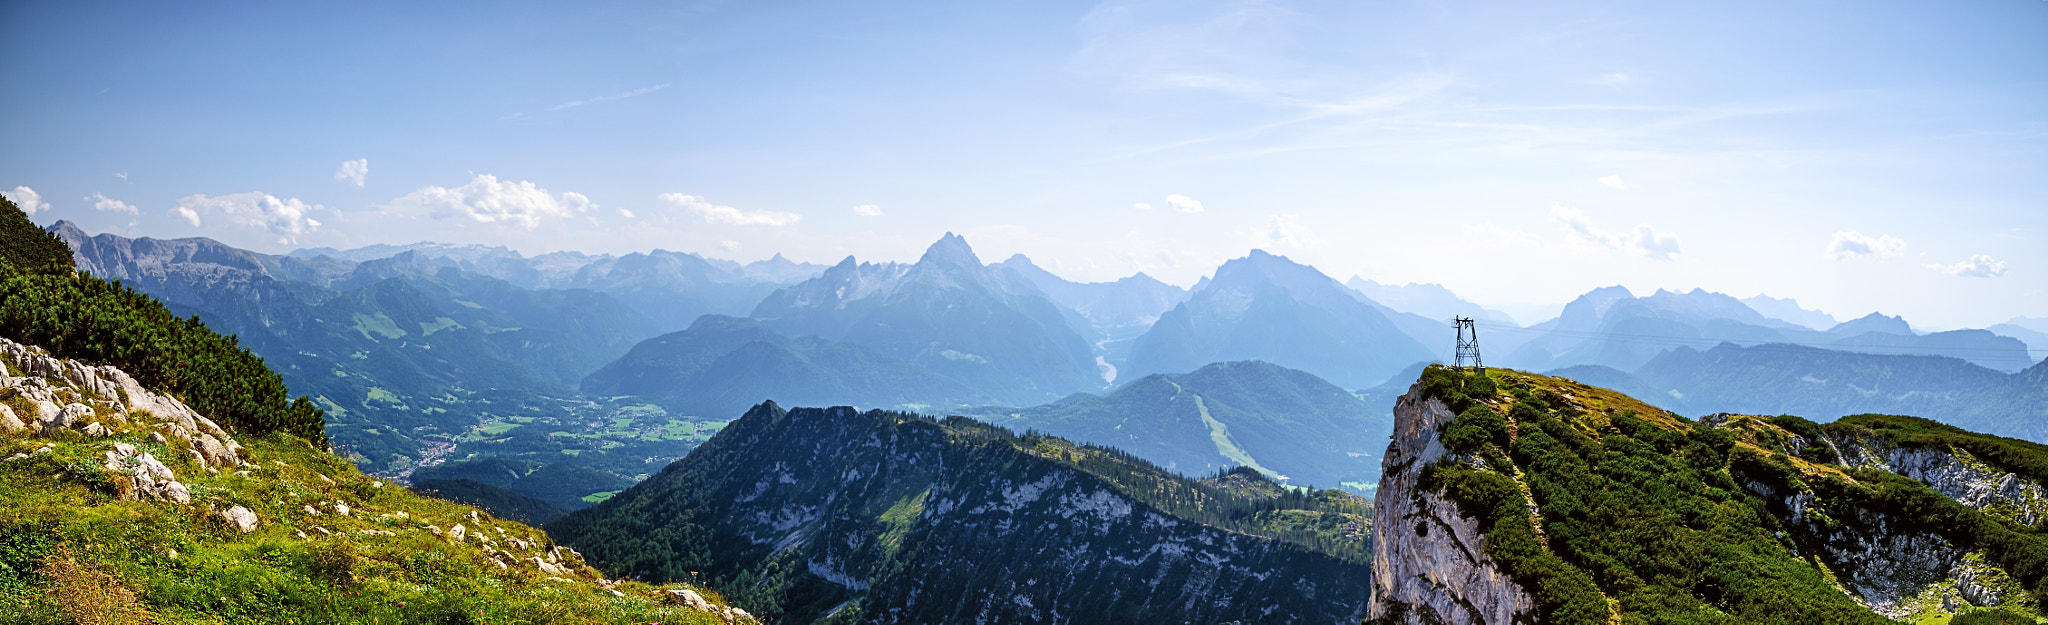 Photograph Untersberg Panorama by Daniel Beck on 500px